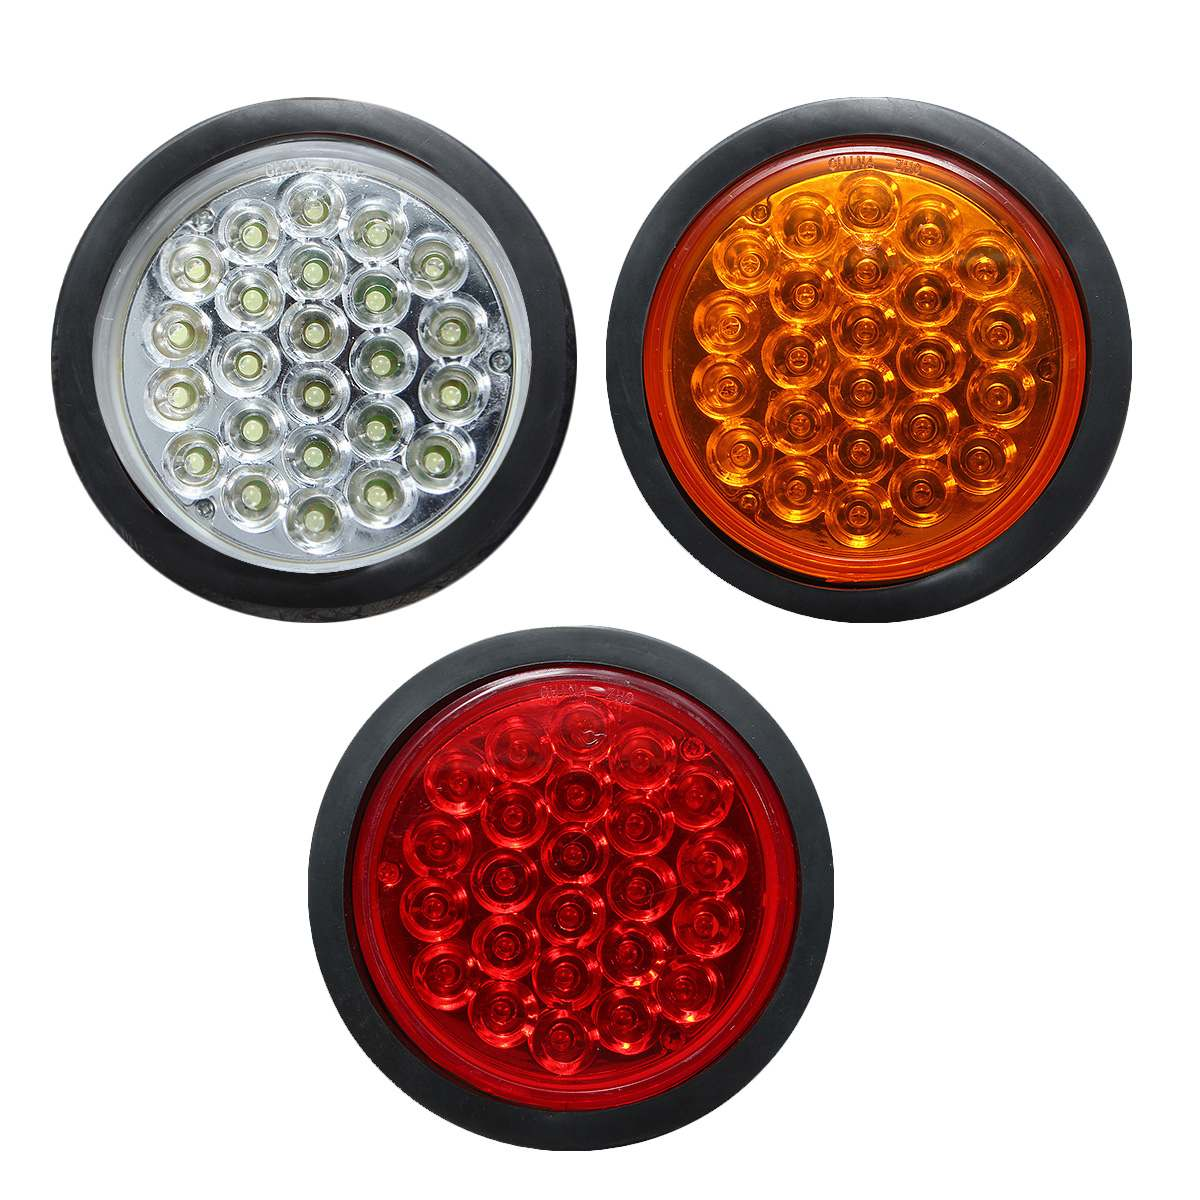 2 x LED Side Marker Light 12V 24V E-marked Car Truck Lorry Trailer Camper Caravan Van Position Lamp Tail Triple function Red White Orange Universal